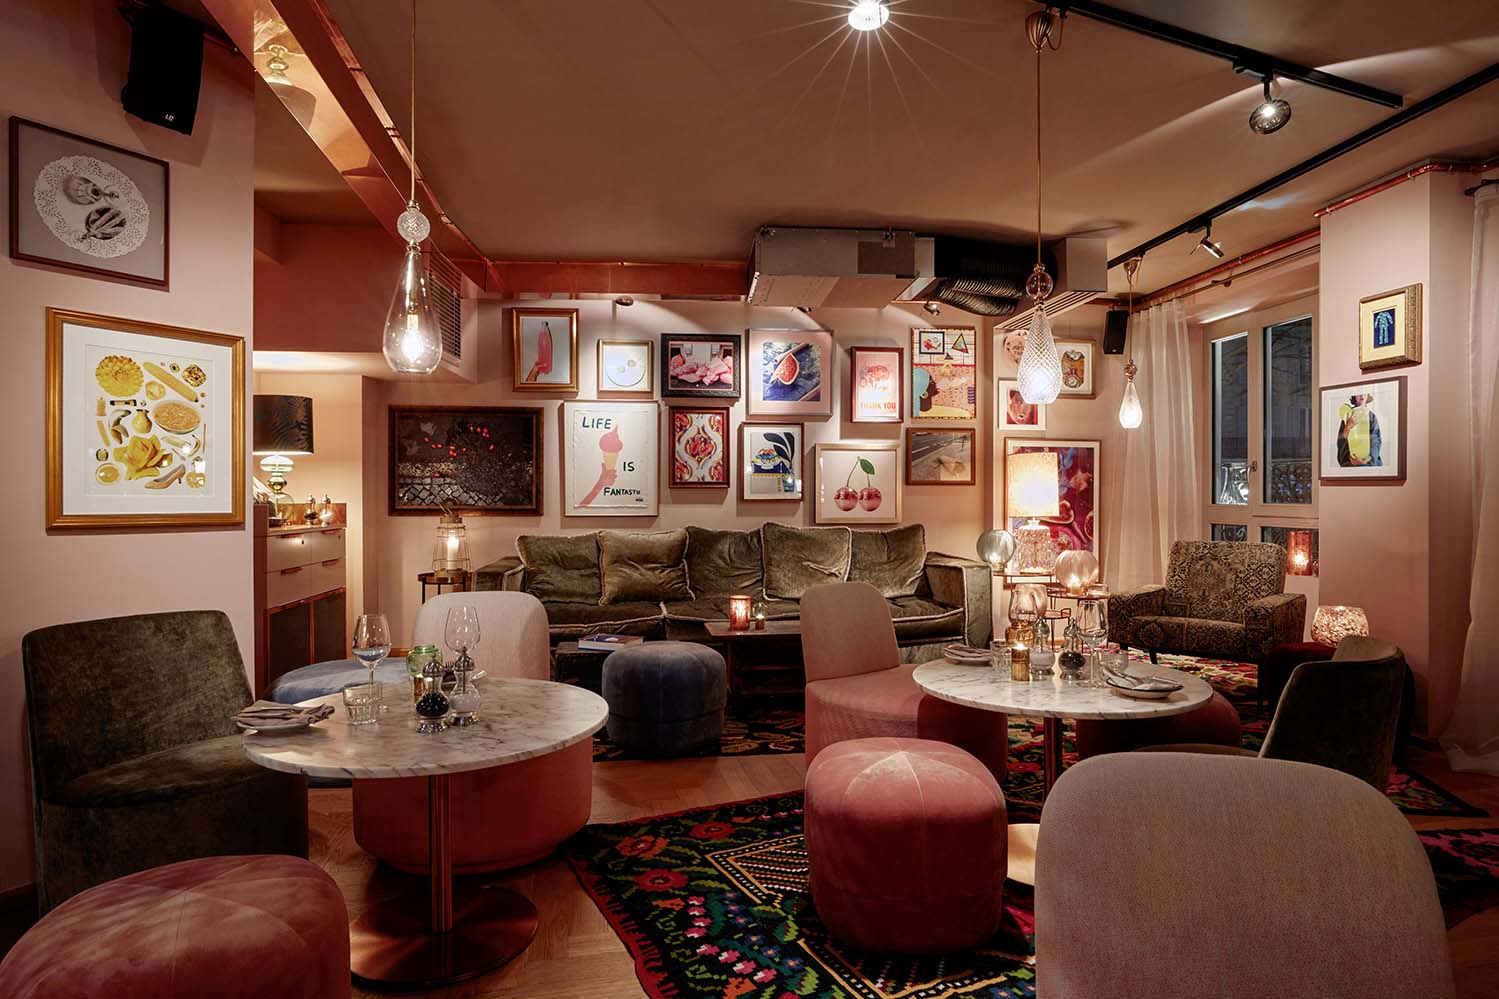 25 Hours Hotel Frankfurt 25hours Hotel Terminus Nord Brings Parisian Flair To Their